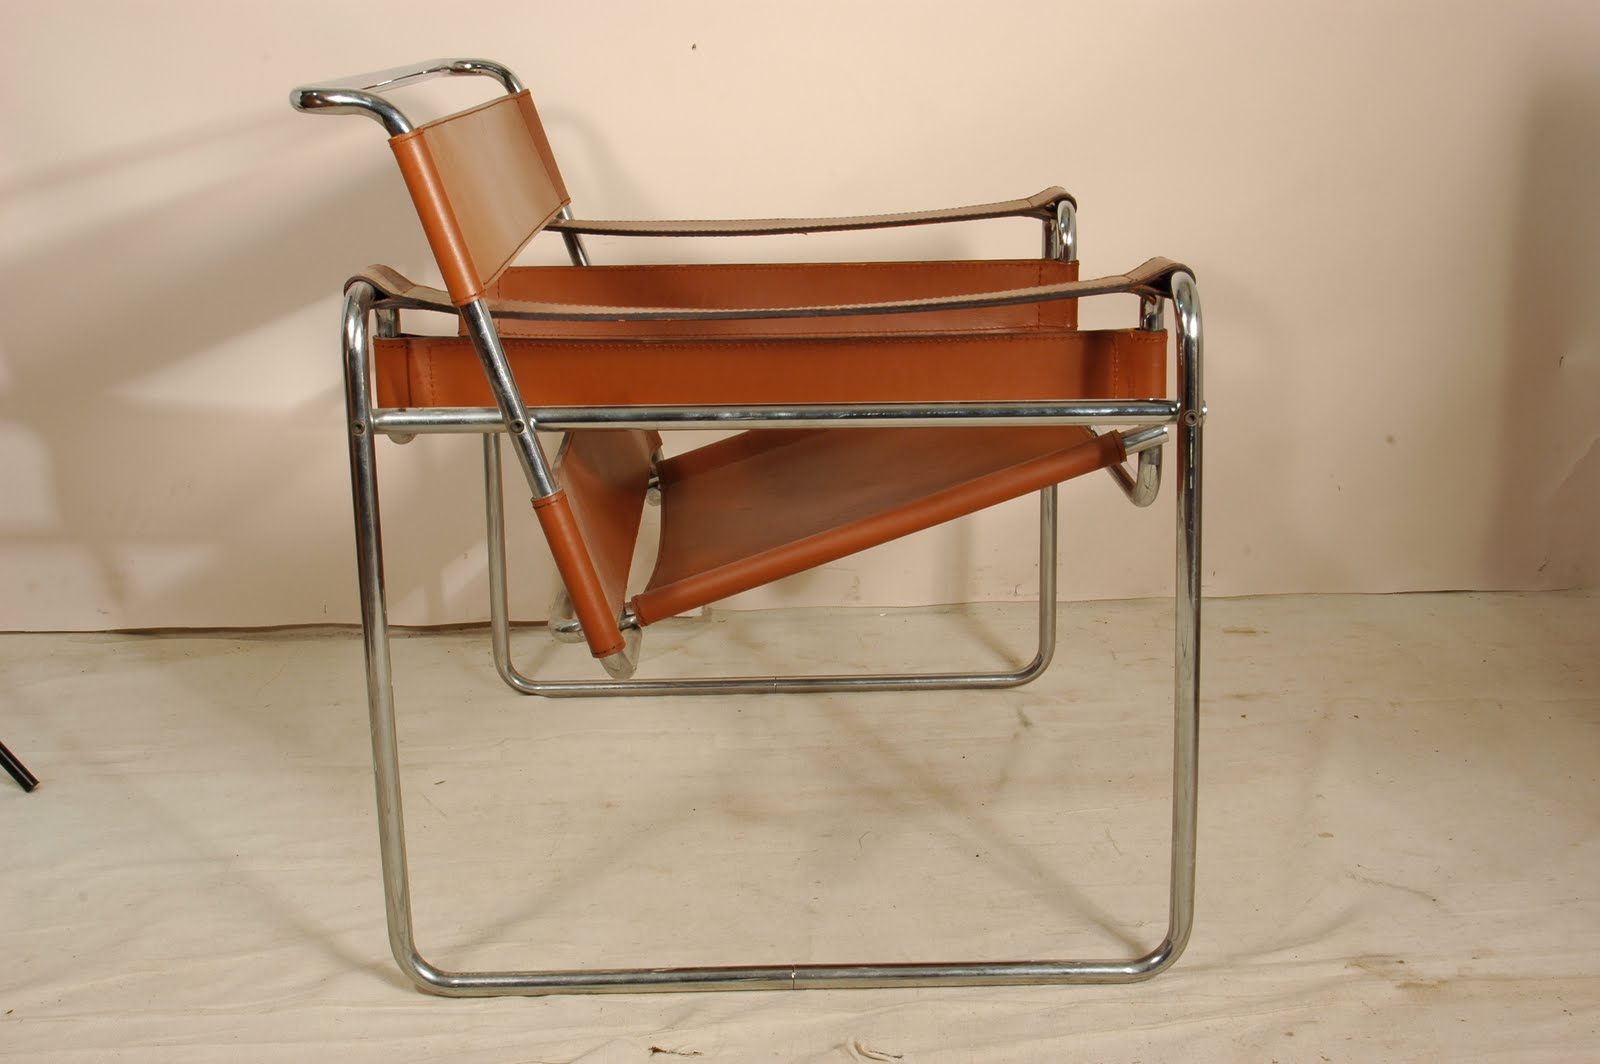 marcel breuer b3 39 wassily 39 chair sold. Black Bedroom Furniture Sets. Home Design Ideas